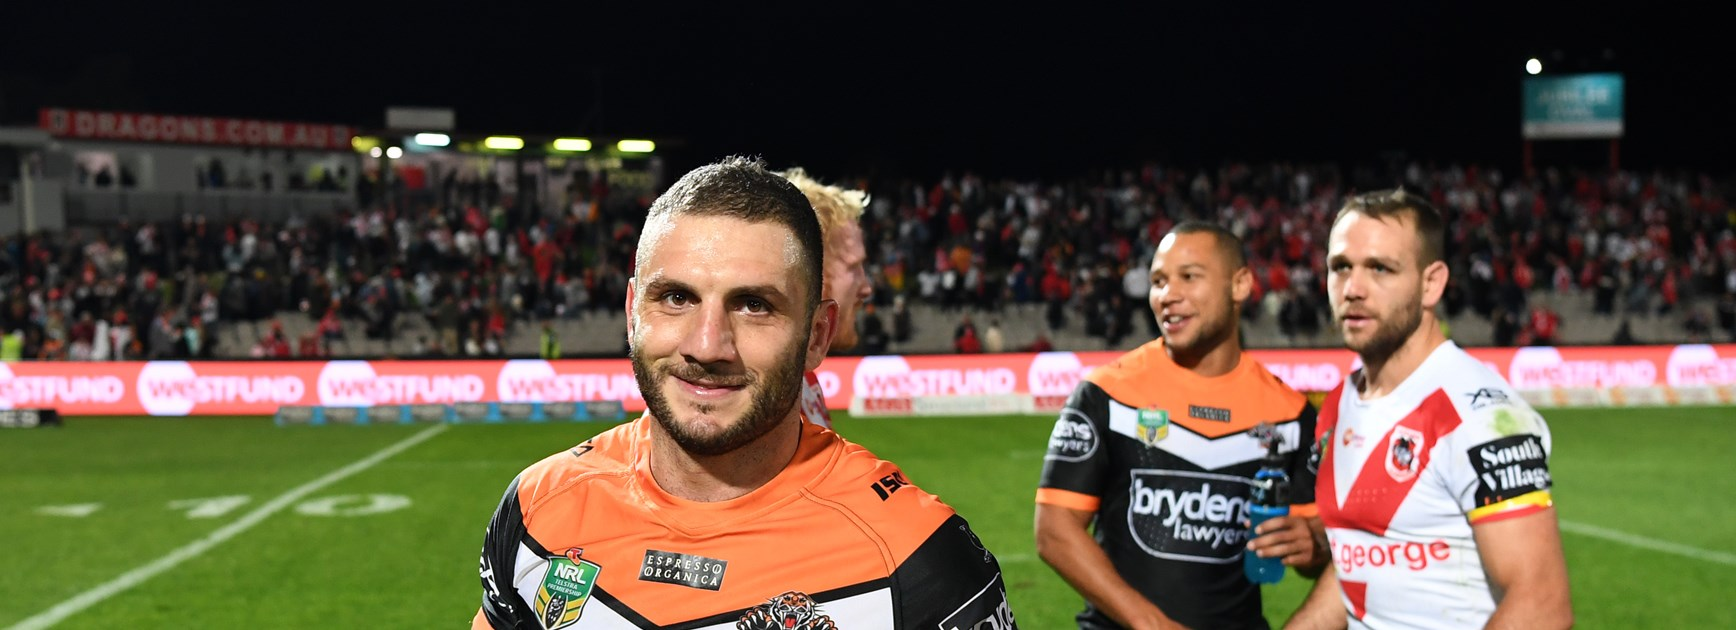 Farah's dominance par for the course: Marshall